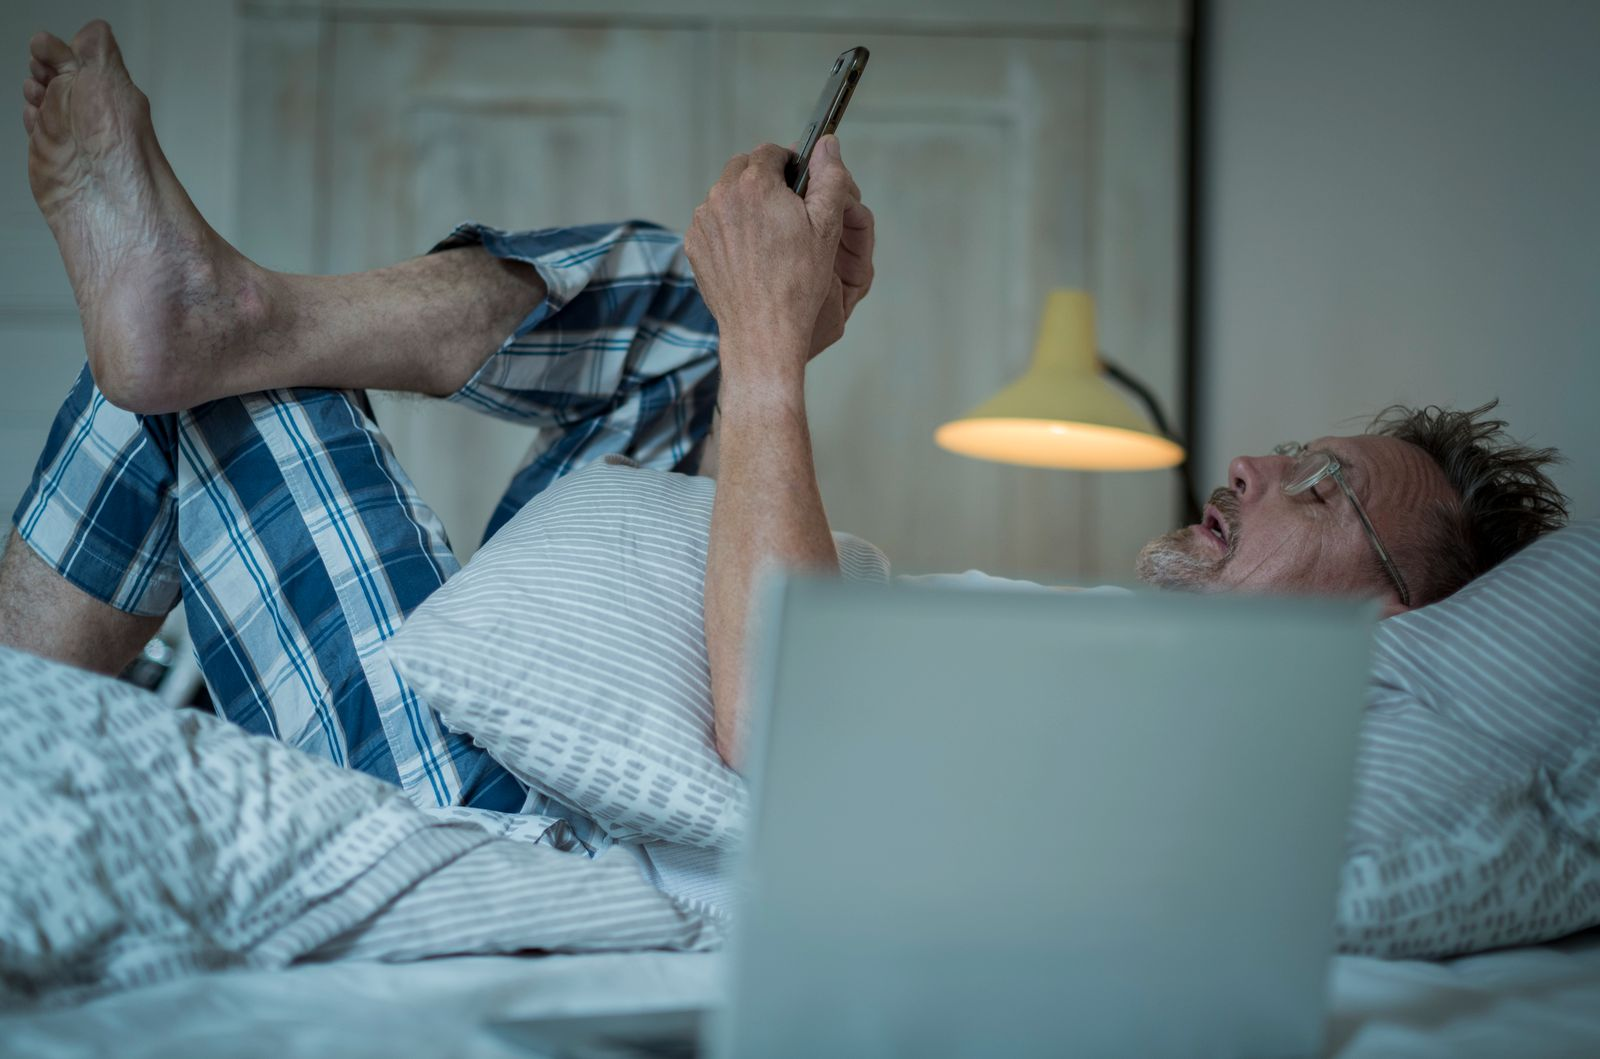 Unhealthy senior man in his 60s with greying beard sleepless in bed while night using laptop and smart phone.